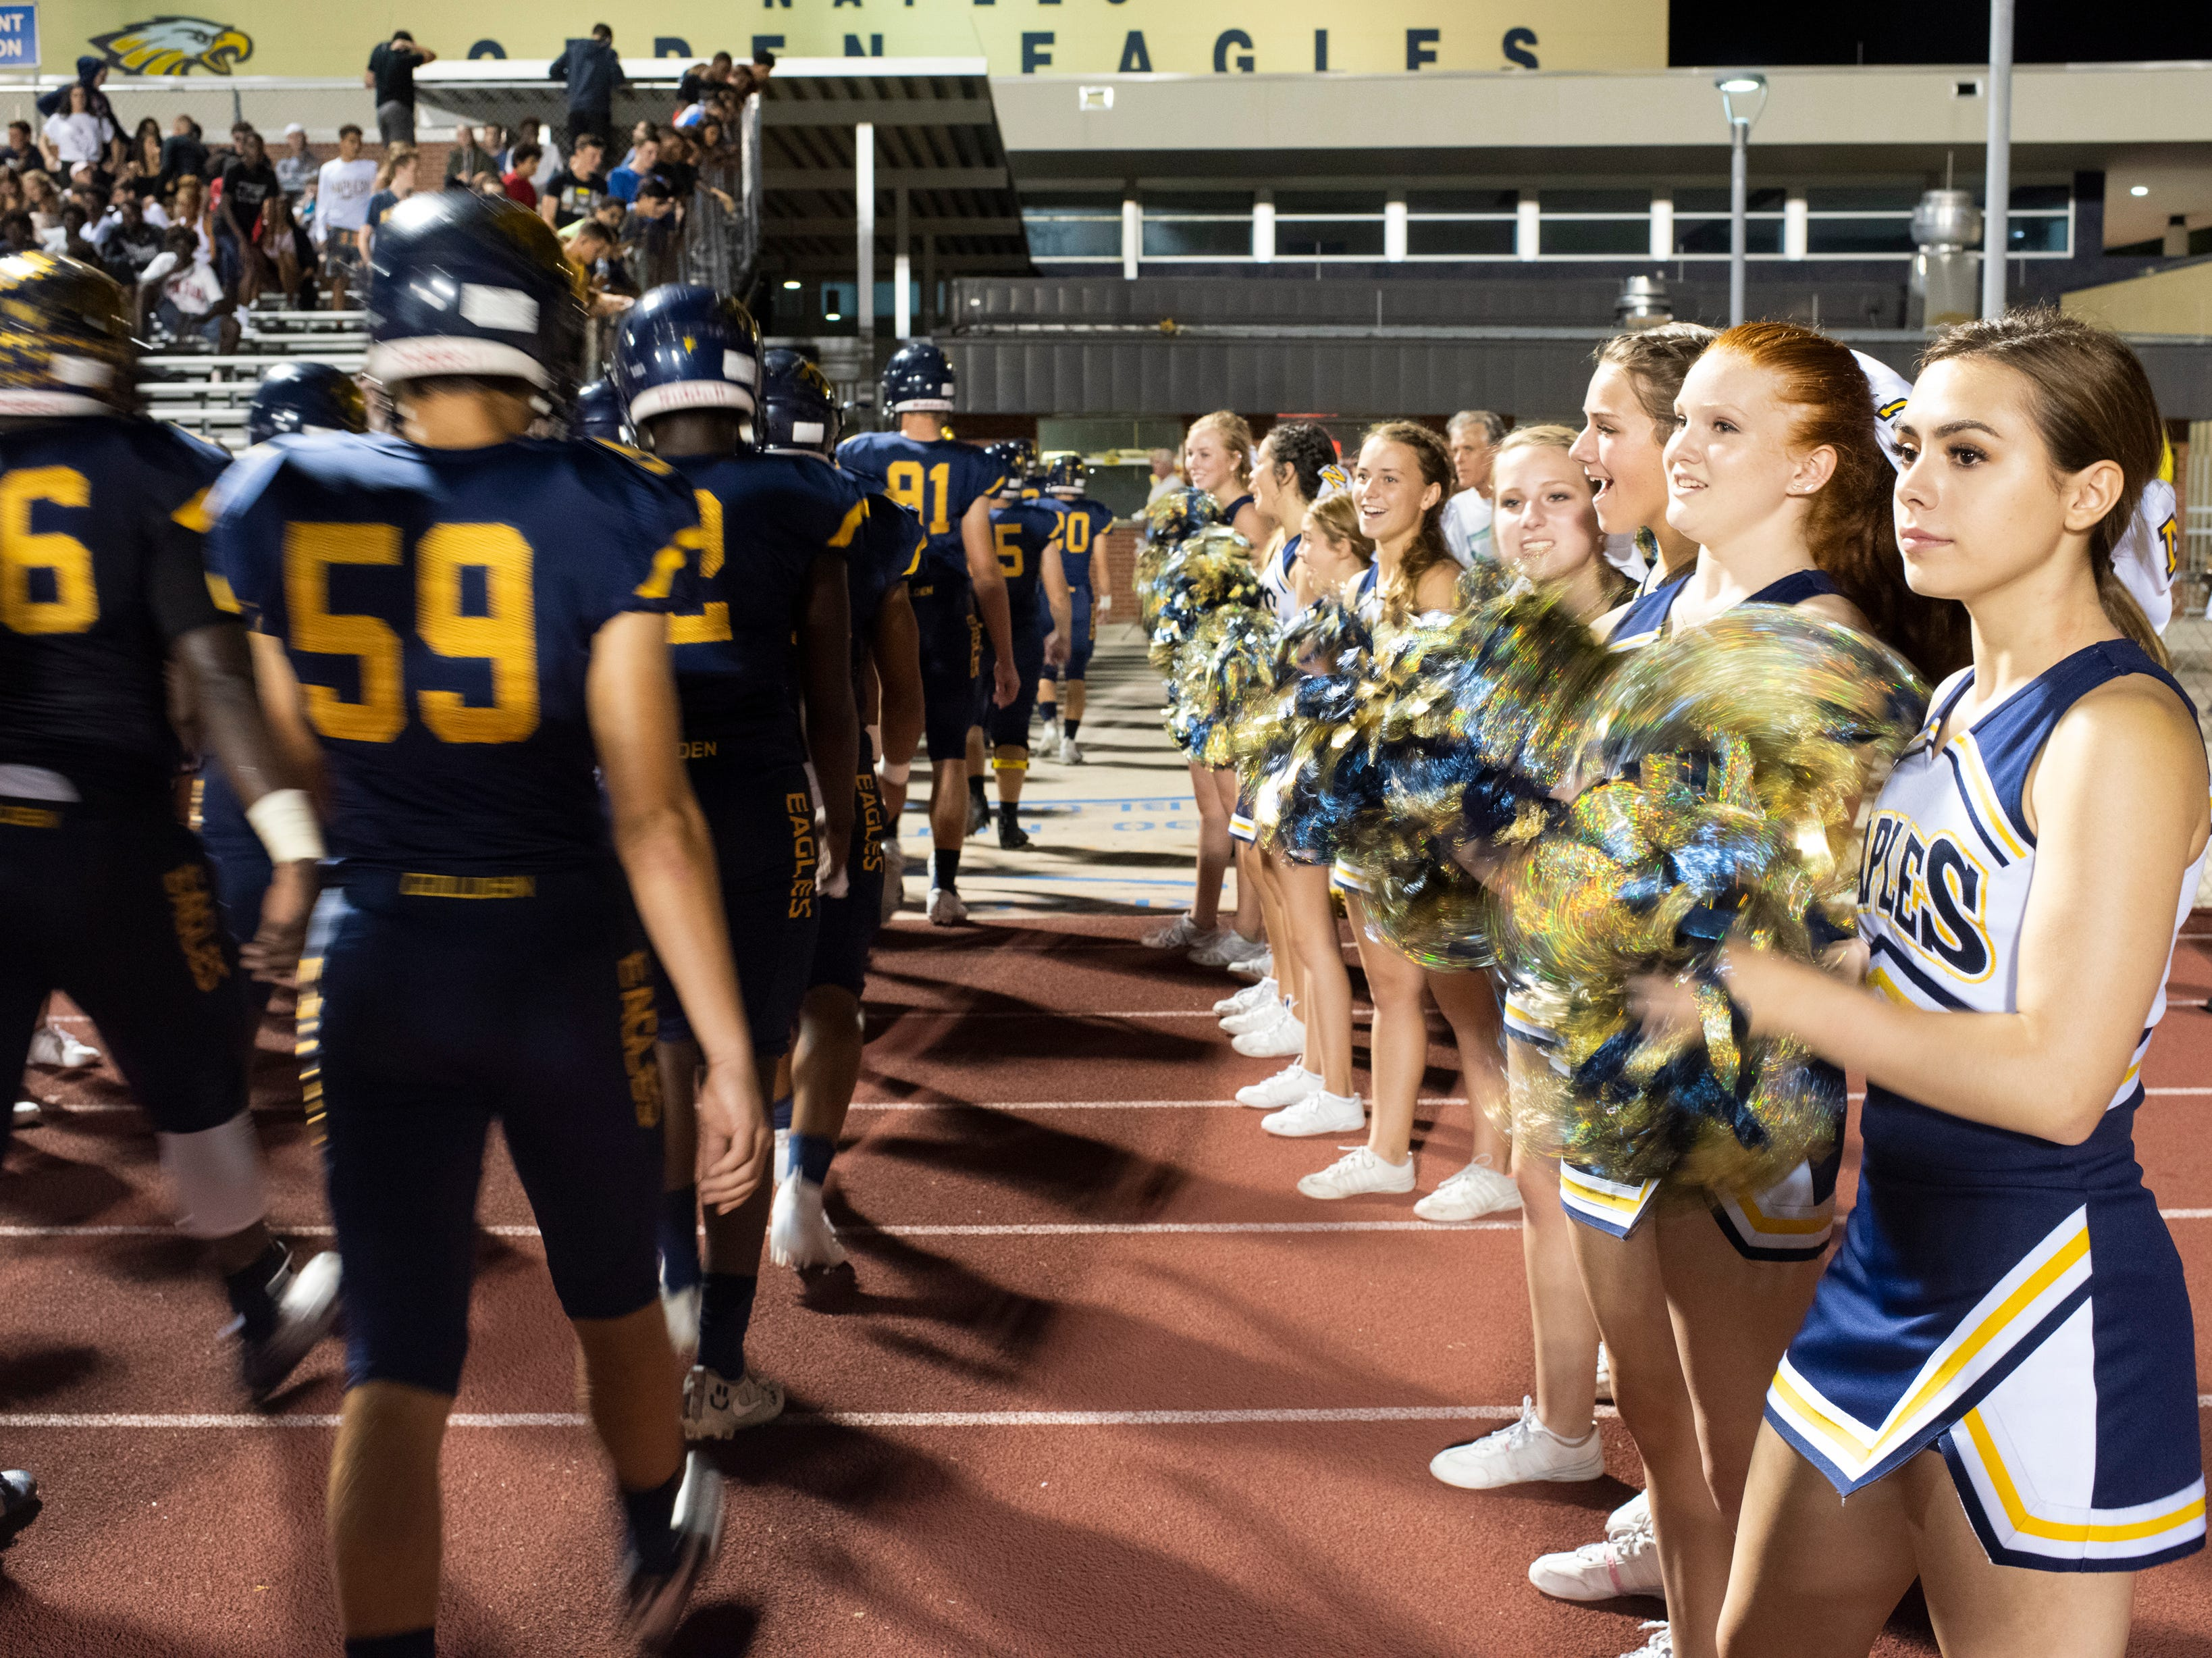 Naples cheerleaders cheer as the team heads for the locker room for half time in the Class 6A regional quarterfinal playoff game abasing Lehigh at Naples High on Friday night, November 9, 2018.